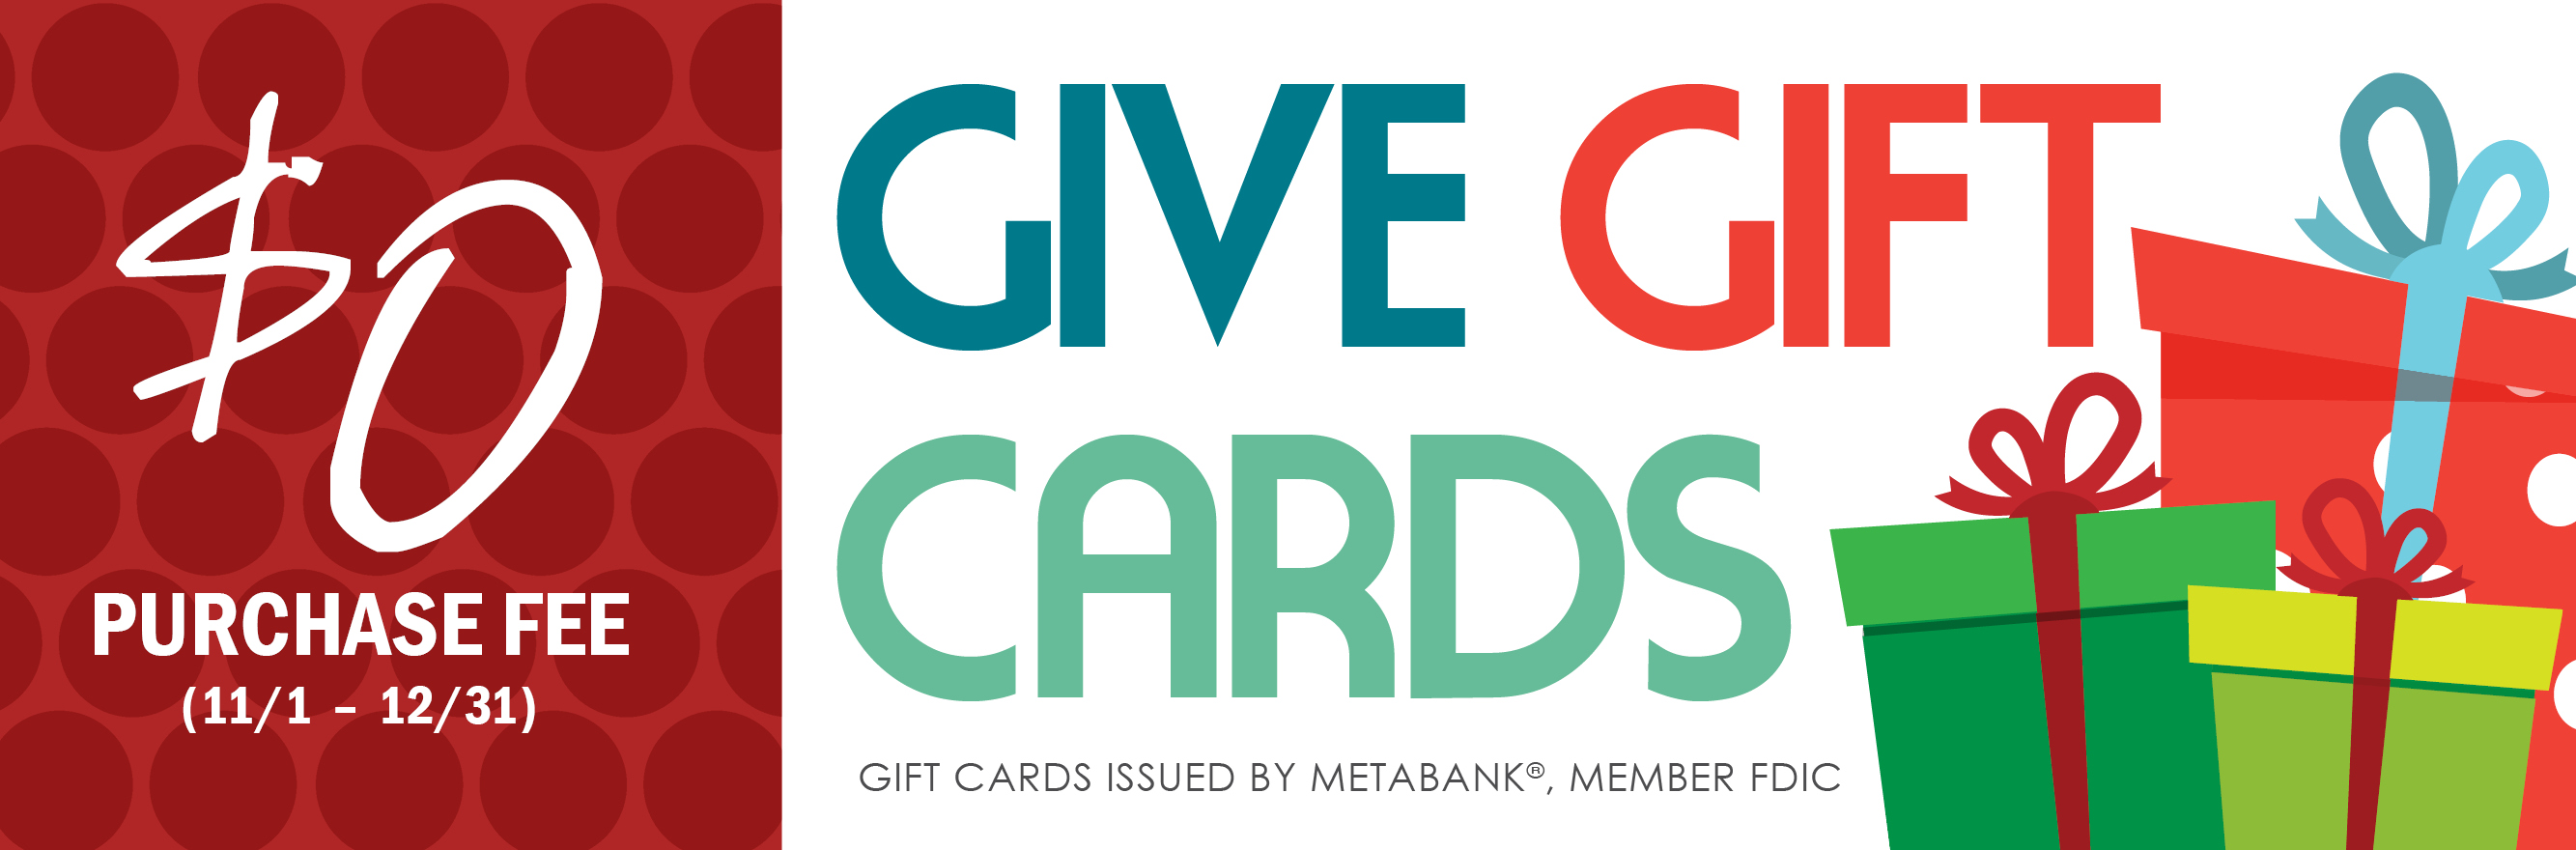 NO PURCHASE FEE GIFT CARD PROMOTION!